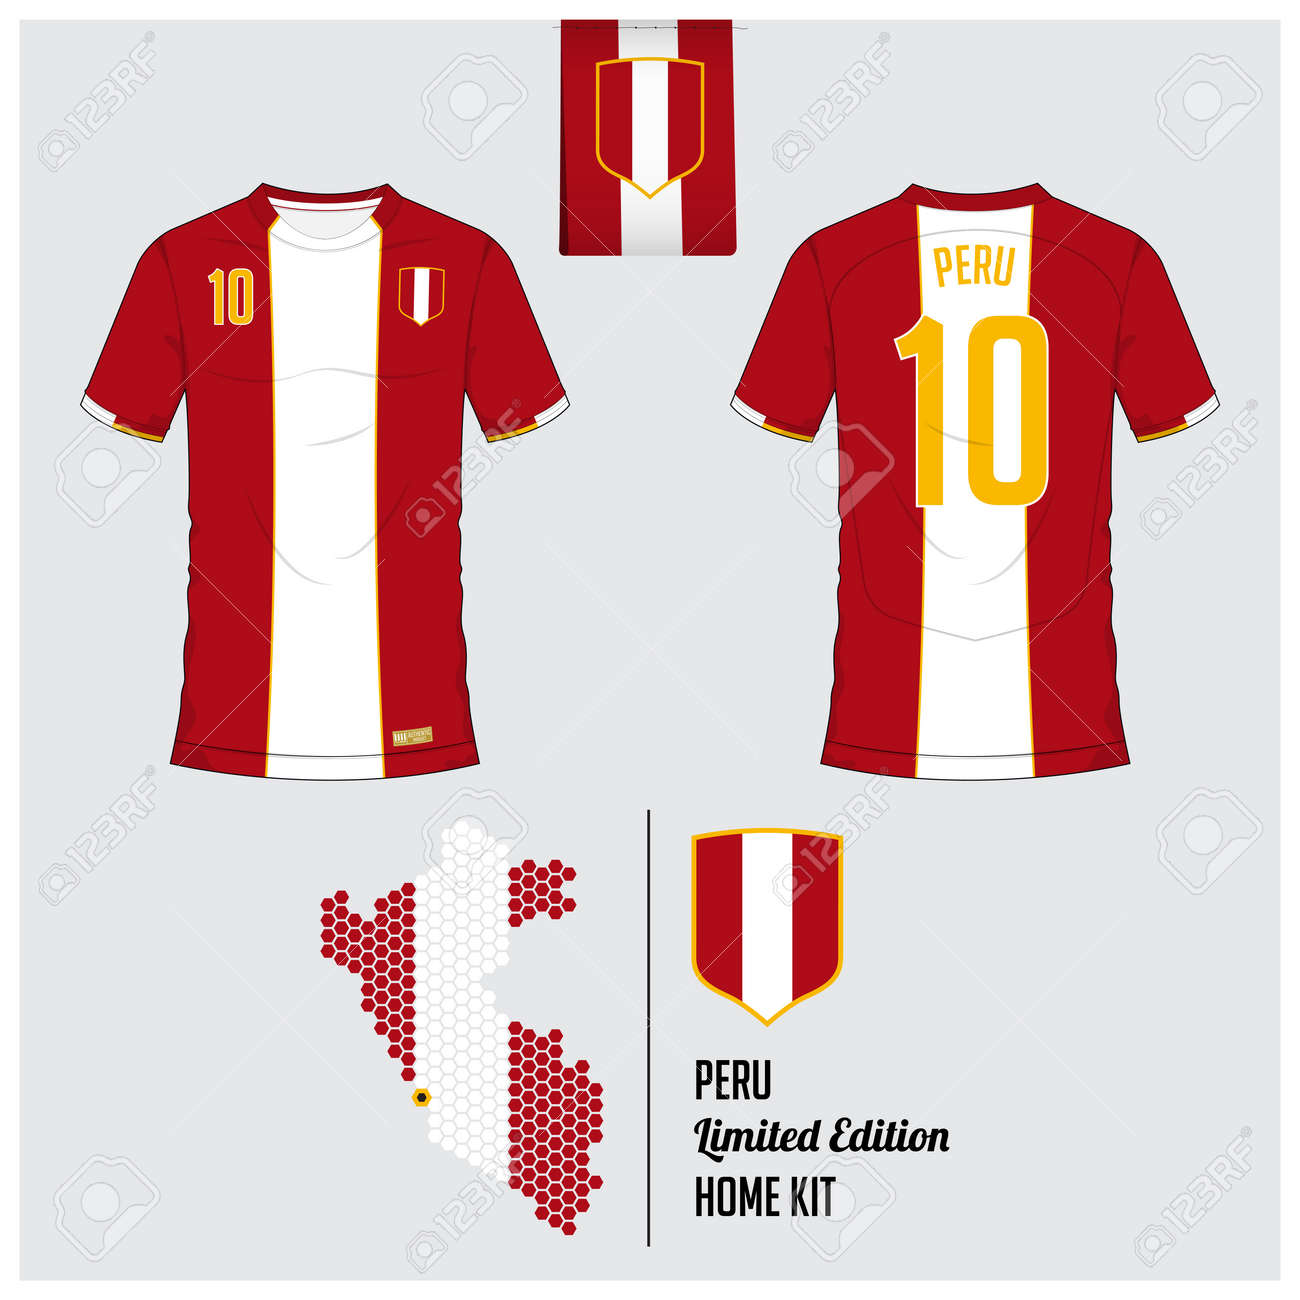 6b4bd4665 Soccer jersey or football kit, template for Peru National Football Team.  Front and back